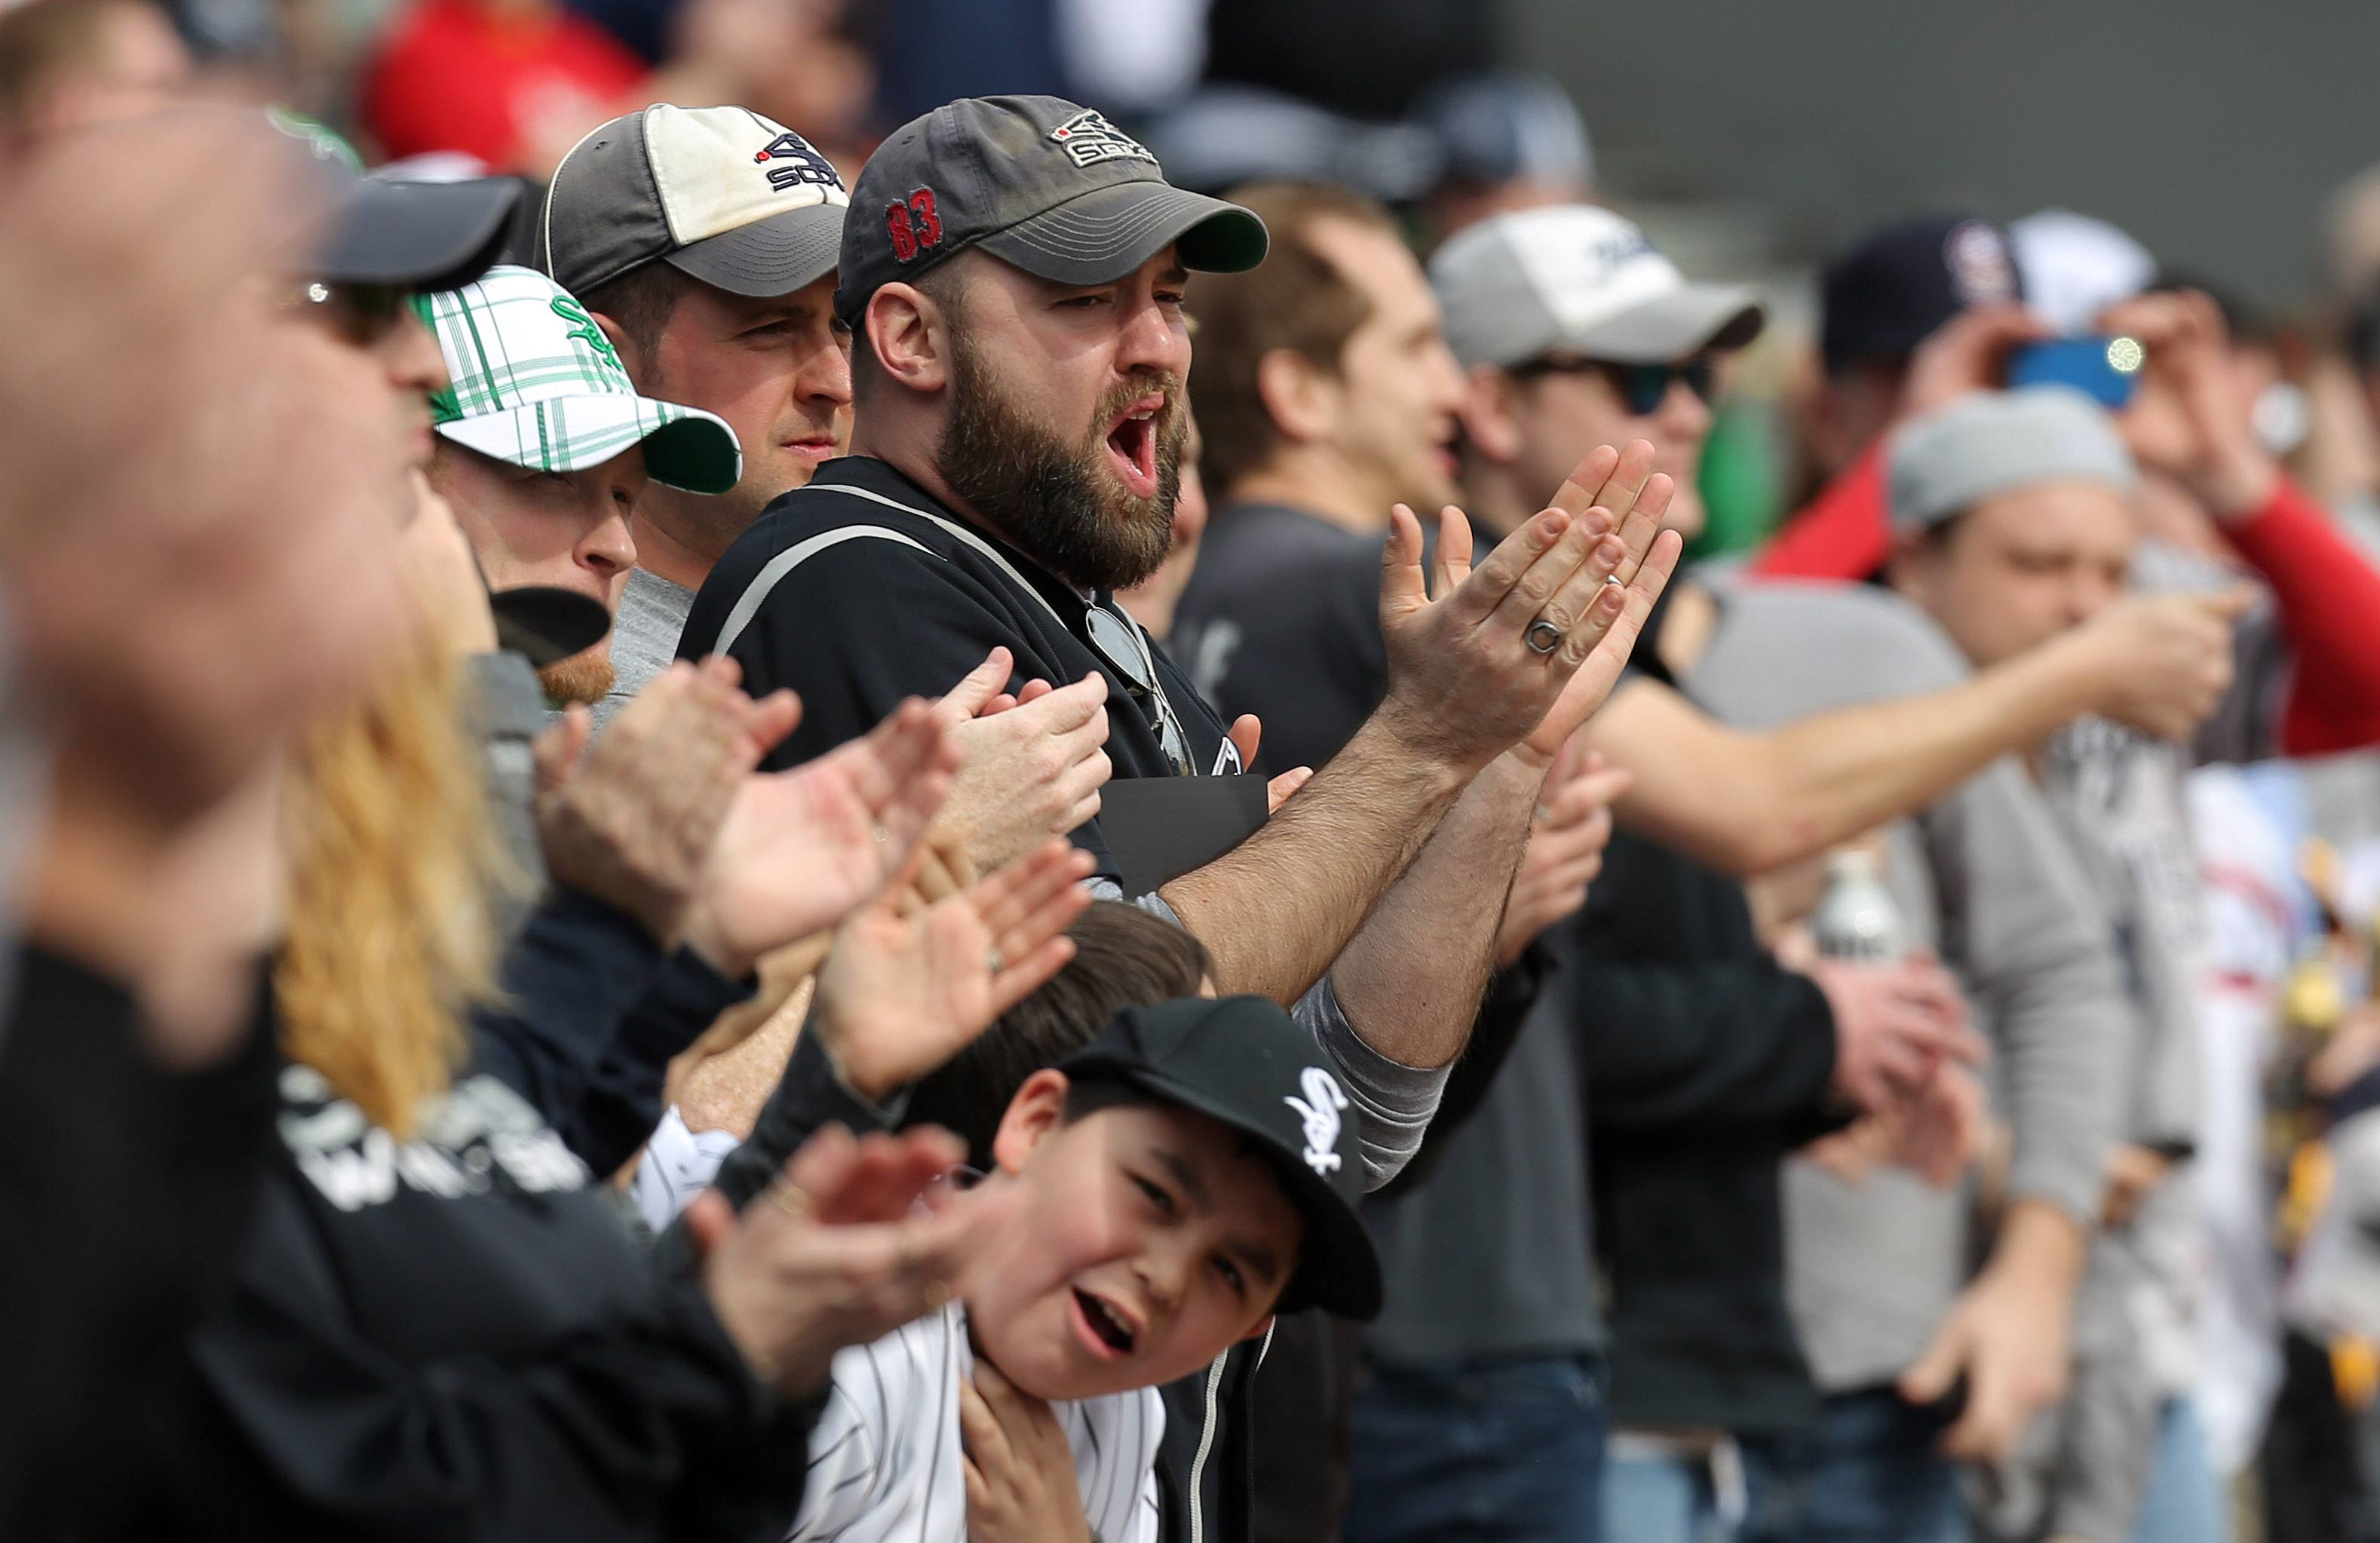 Fans cheer Monday during the White Sox home opener against the Minnesota Twins at U.S. Cellular Field.